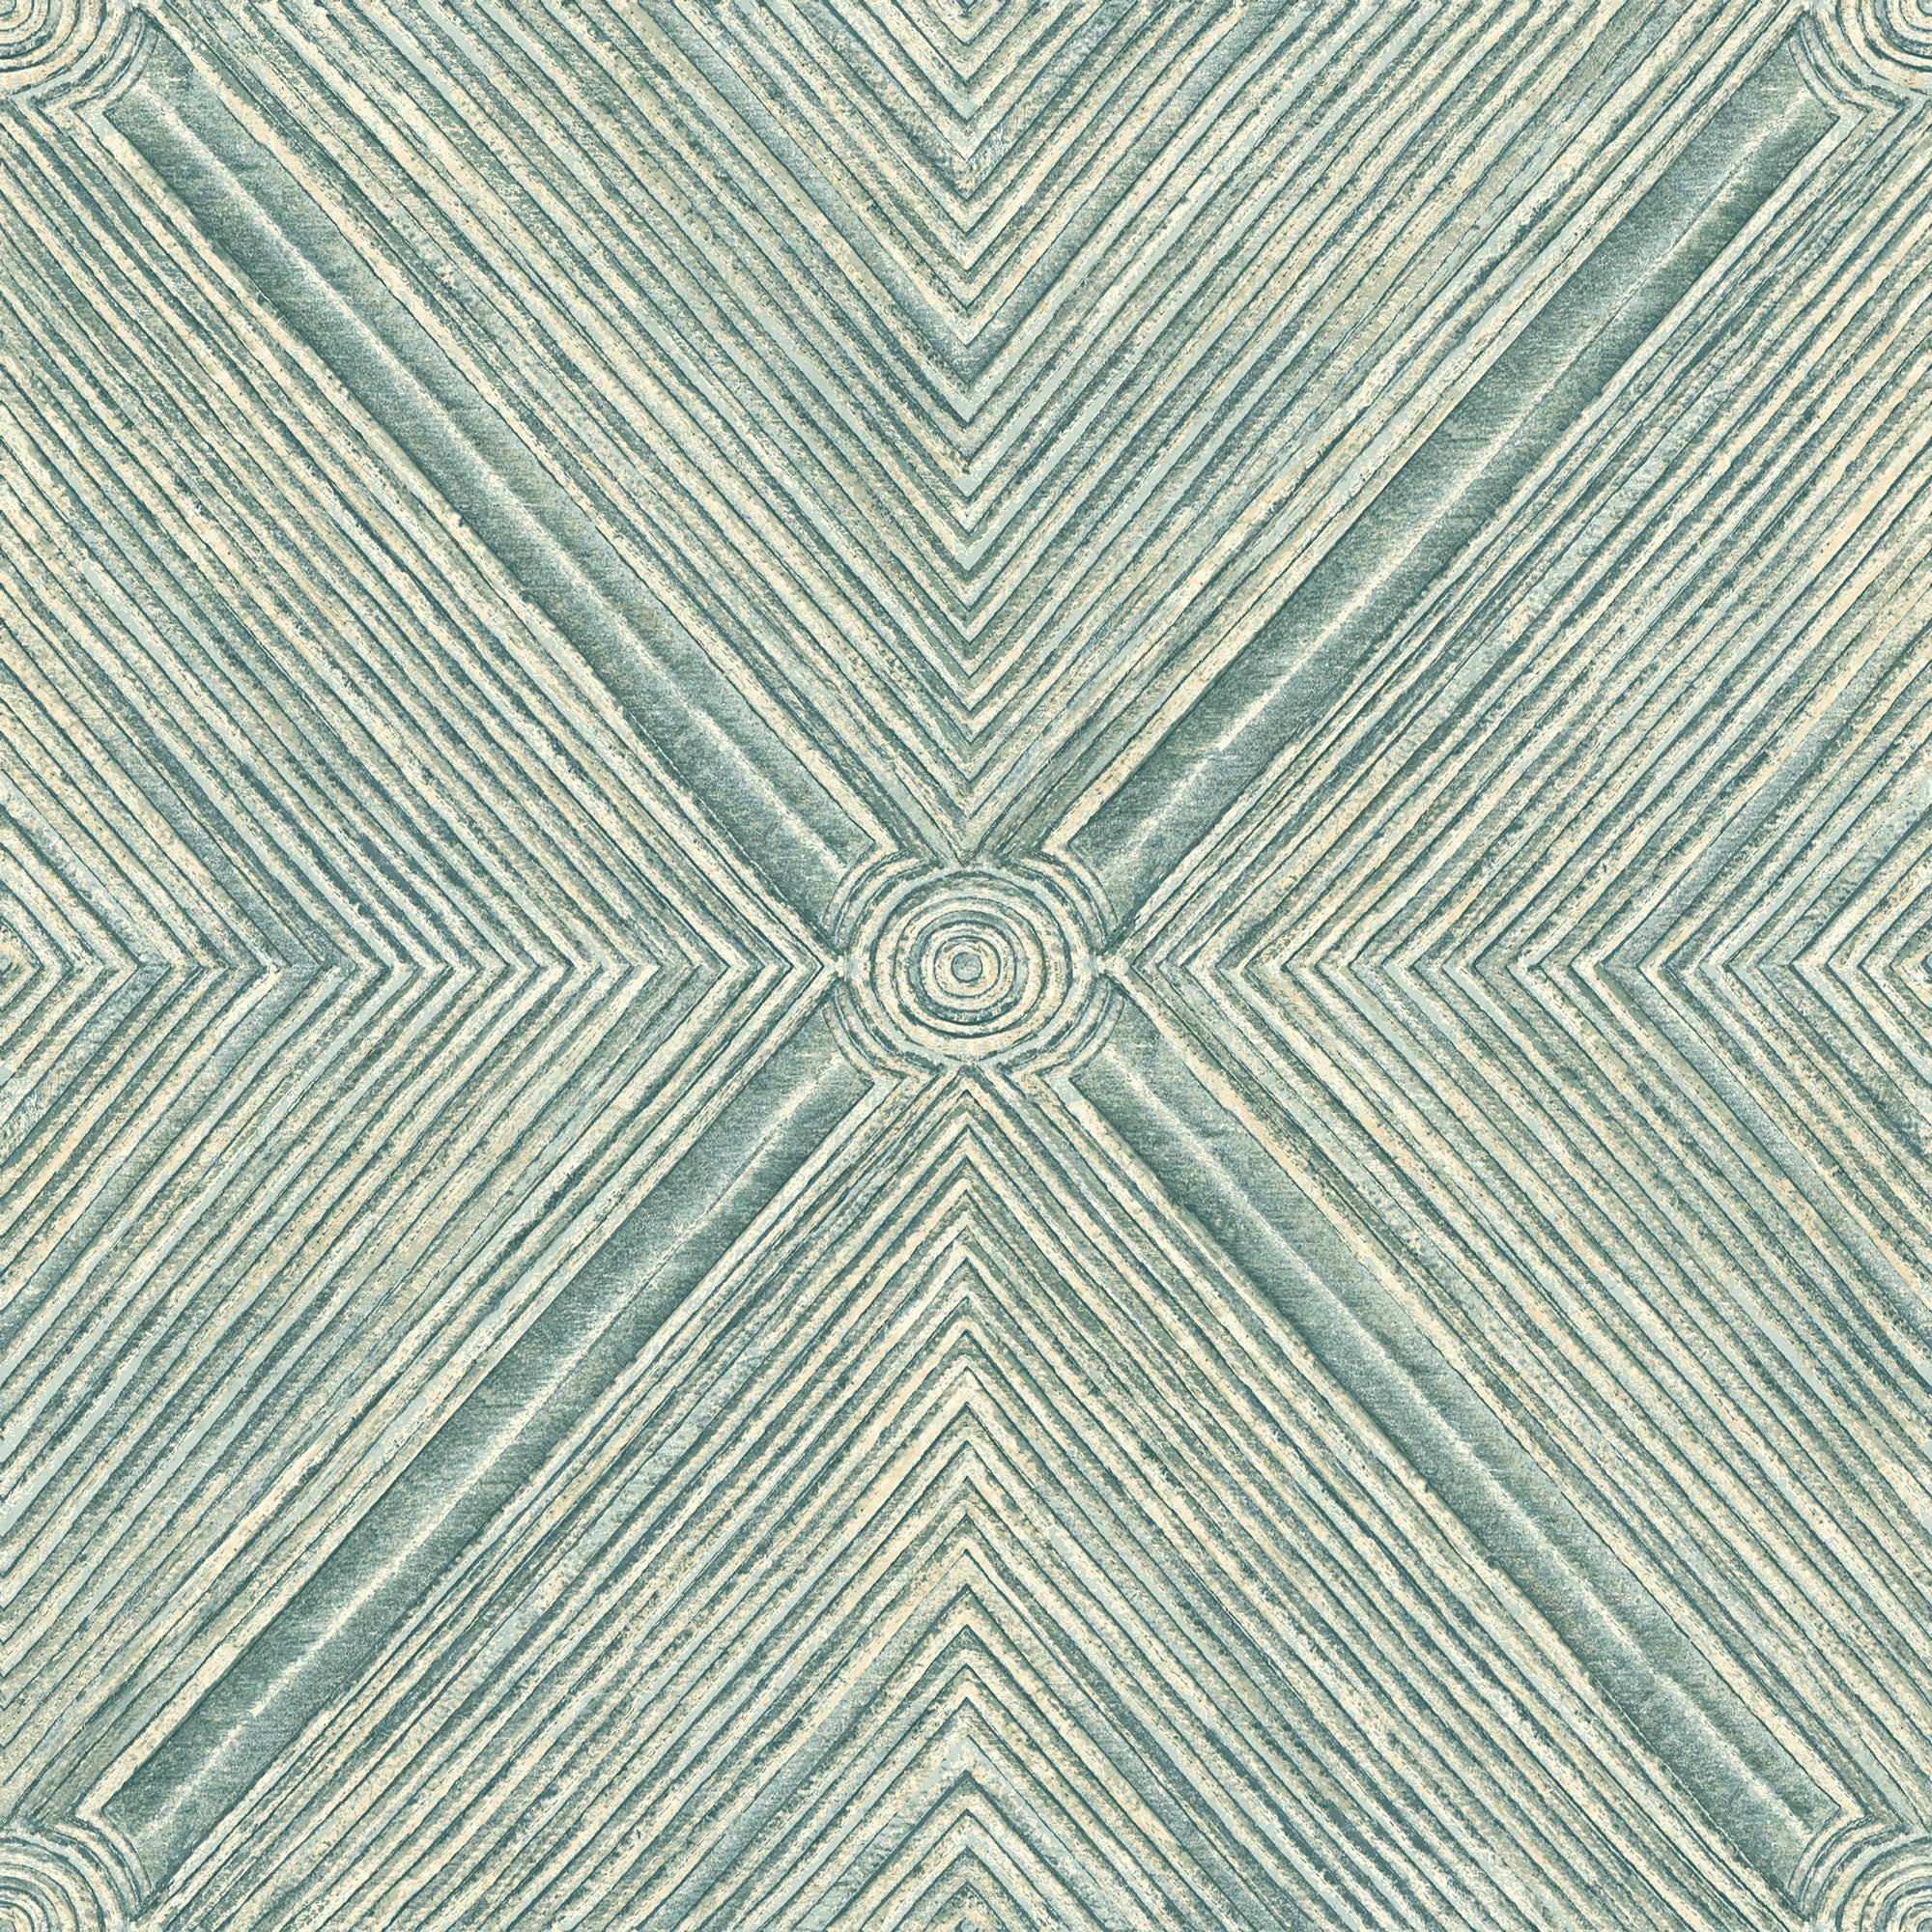 Dimensional Diamond Wallpaper - Teal